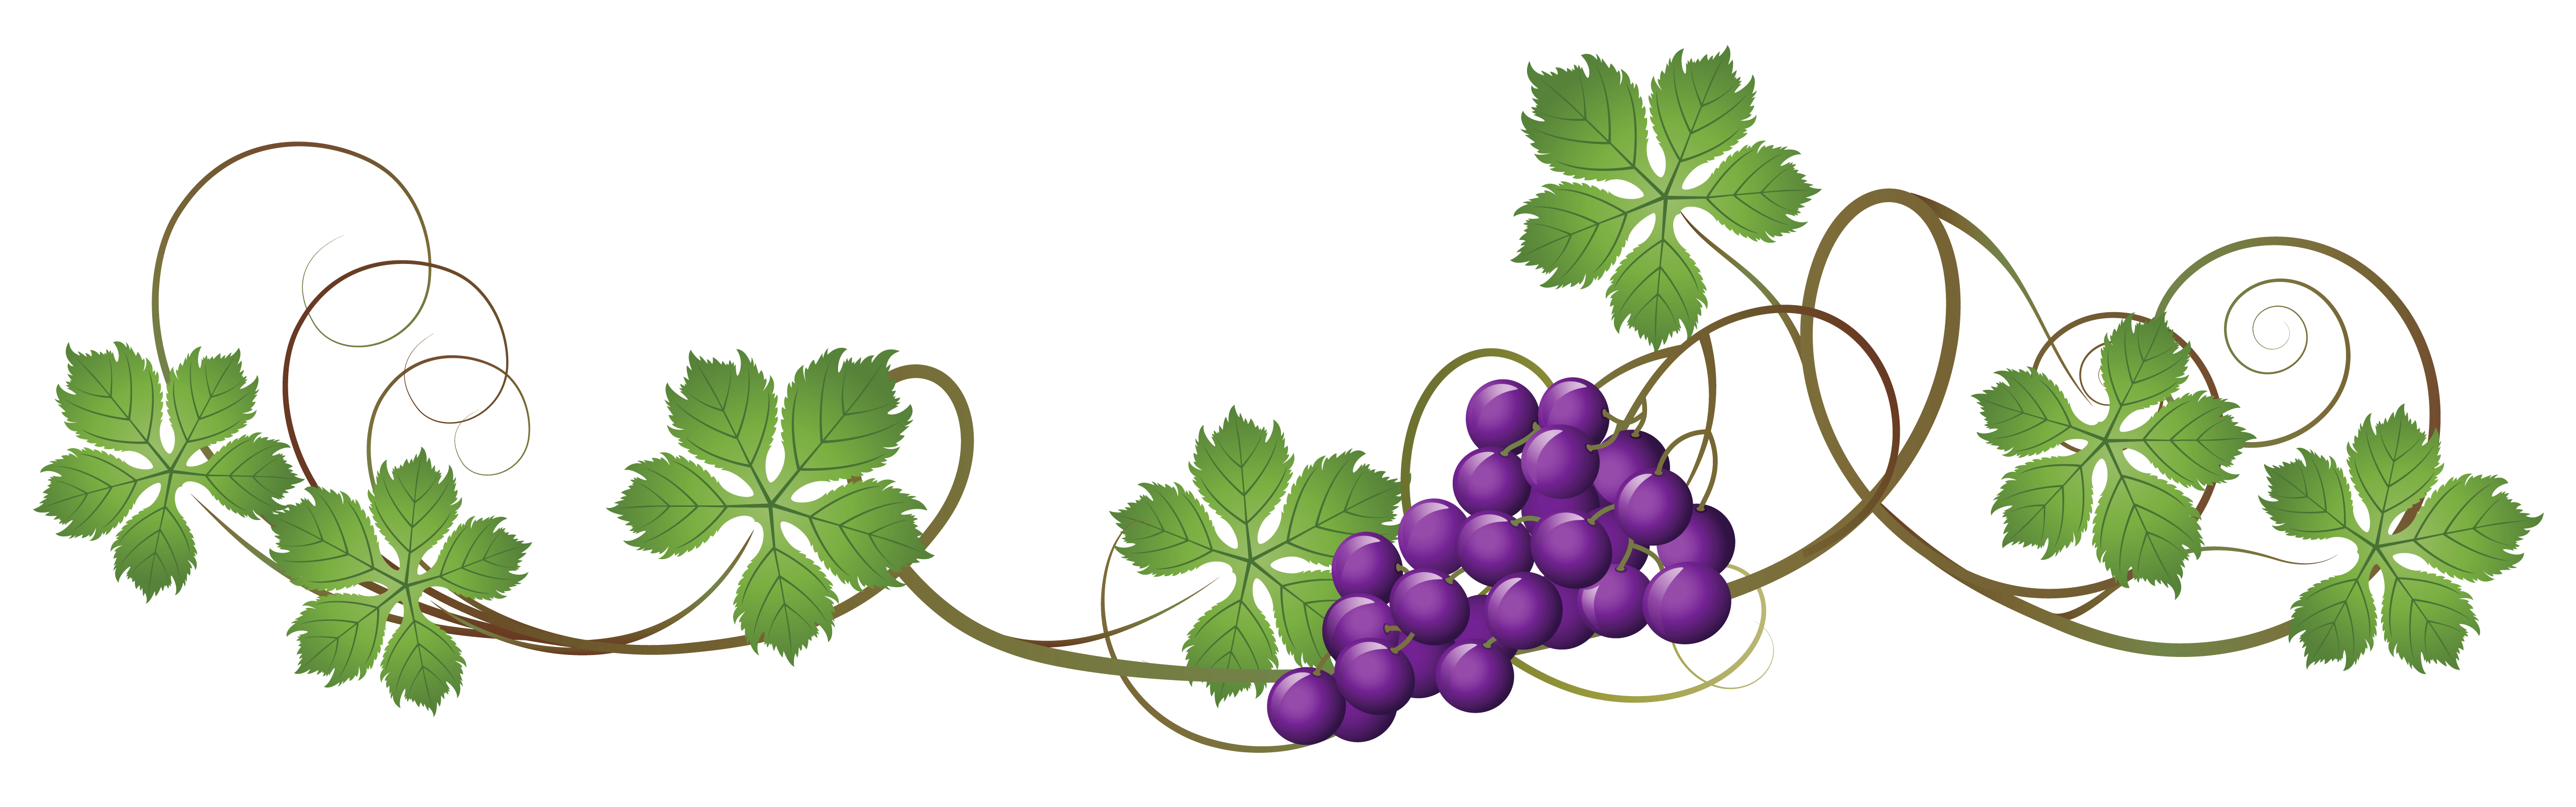 Vines clipart vine plant. Decoration png picture gallery